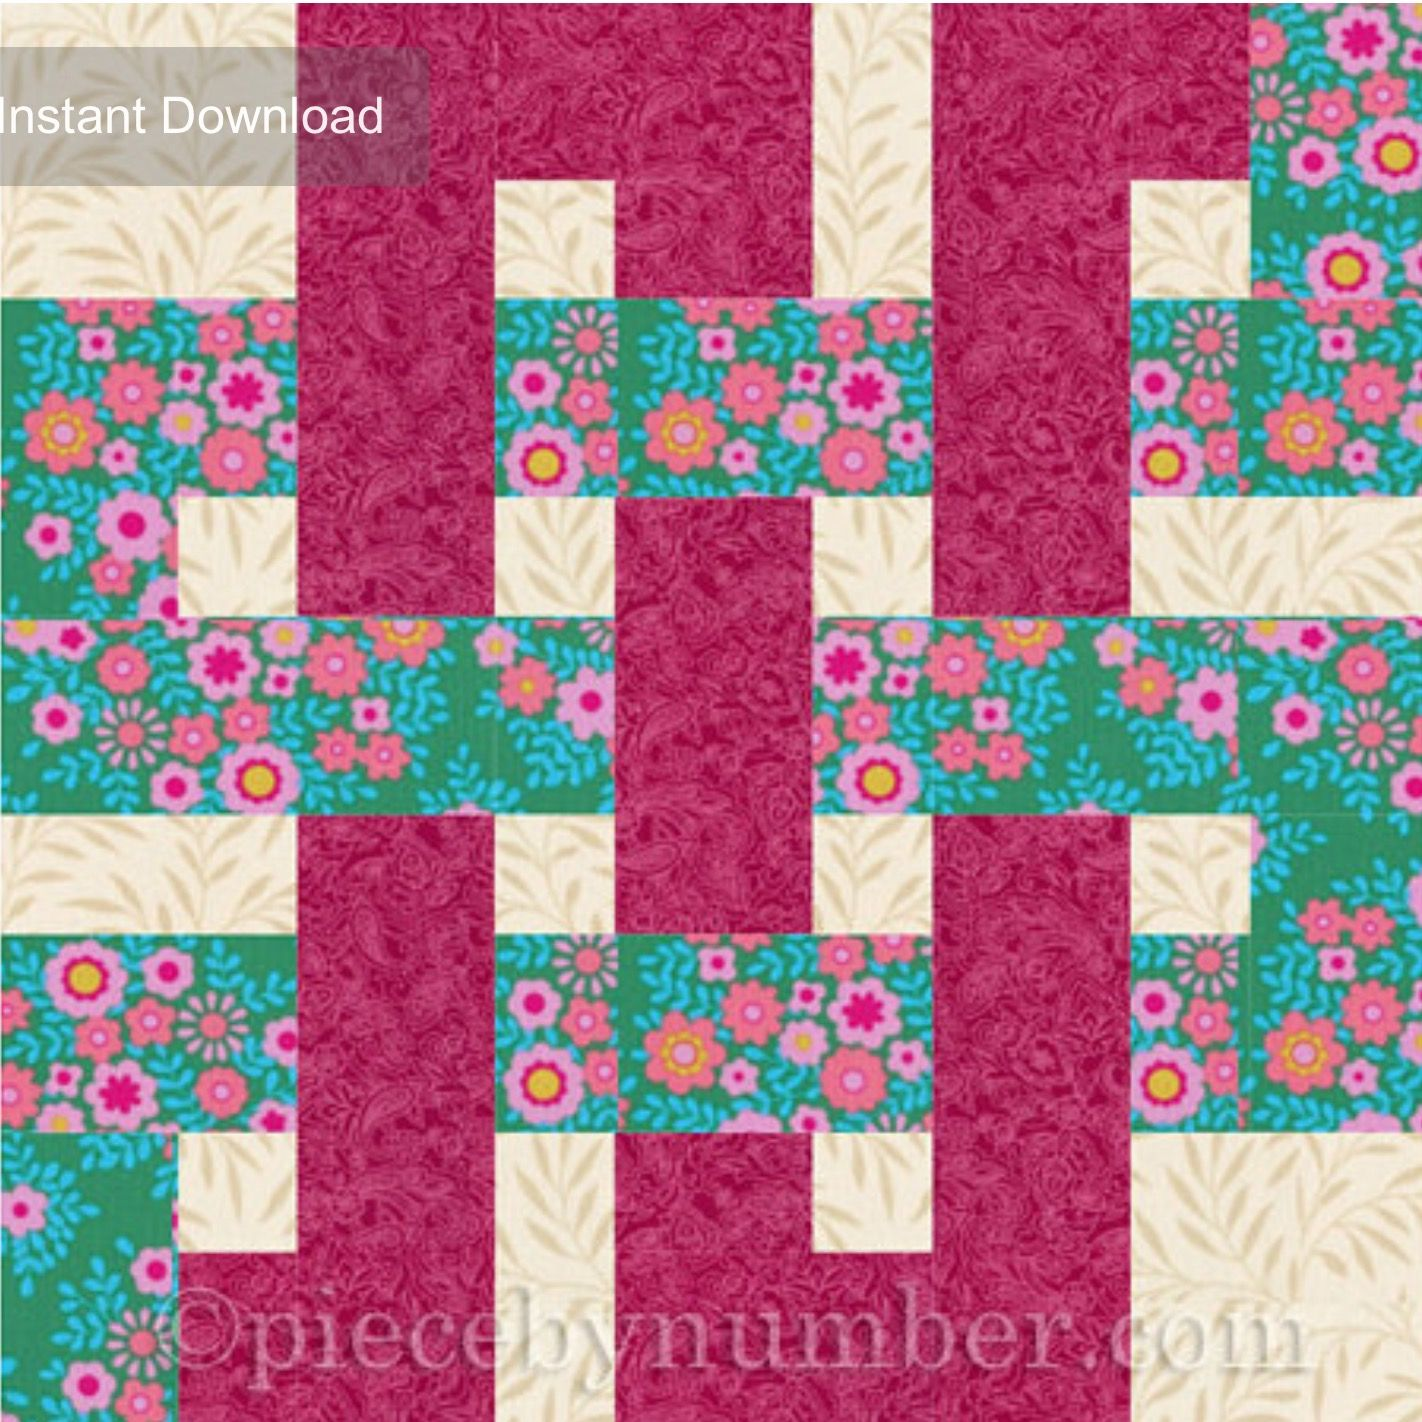 Pin by iris collado on Quilting   Pinterest